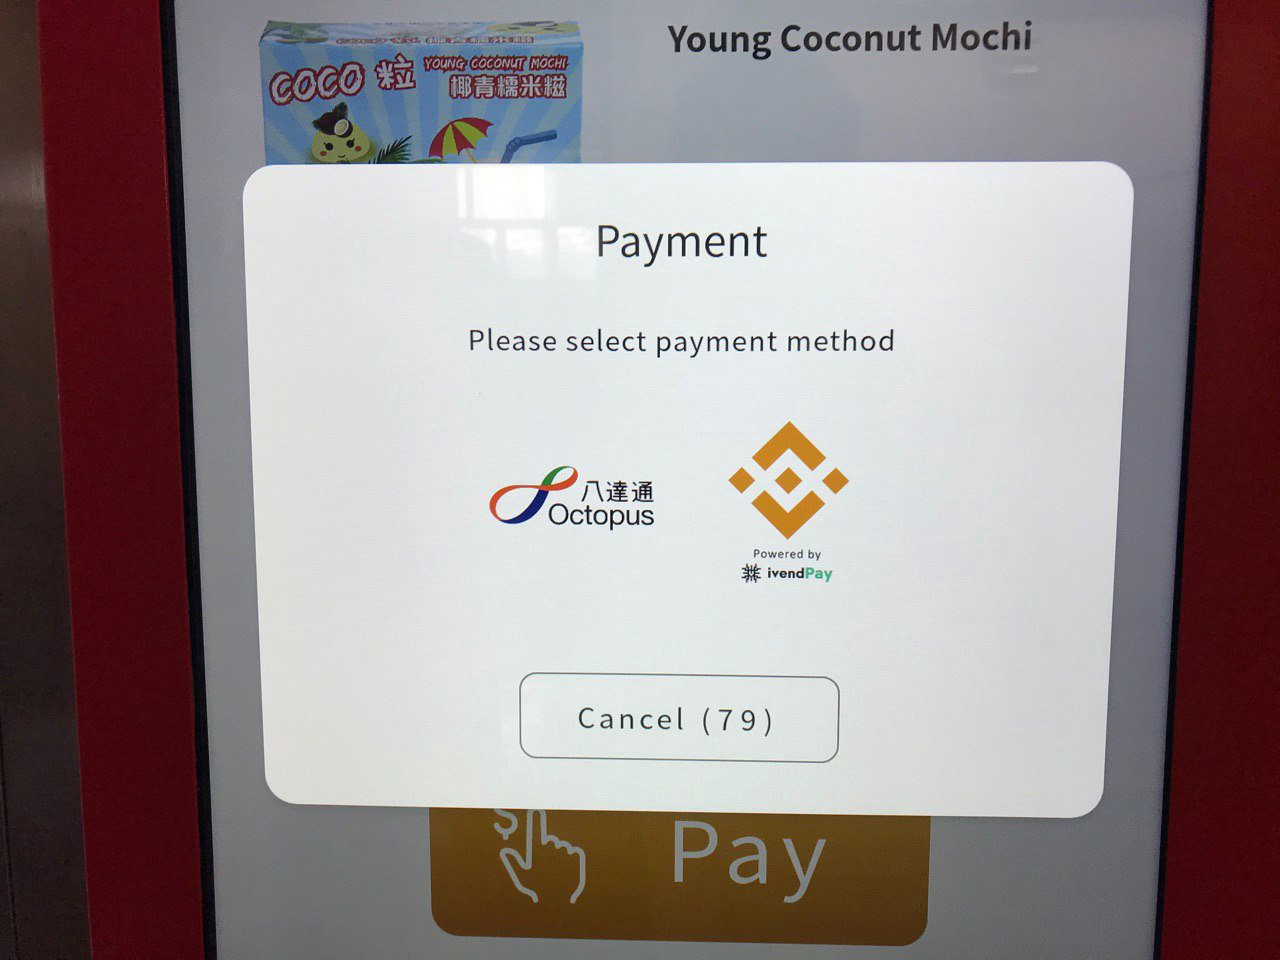 Payment interface for products in OVESER vending machines, Hong Kong